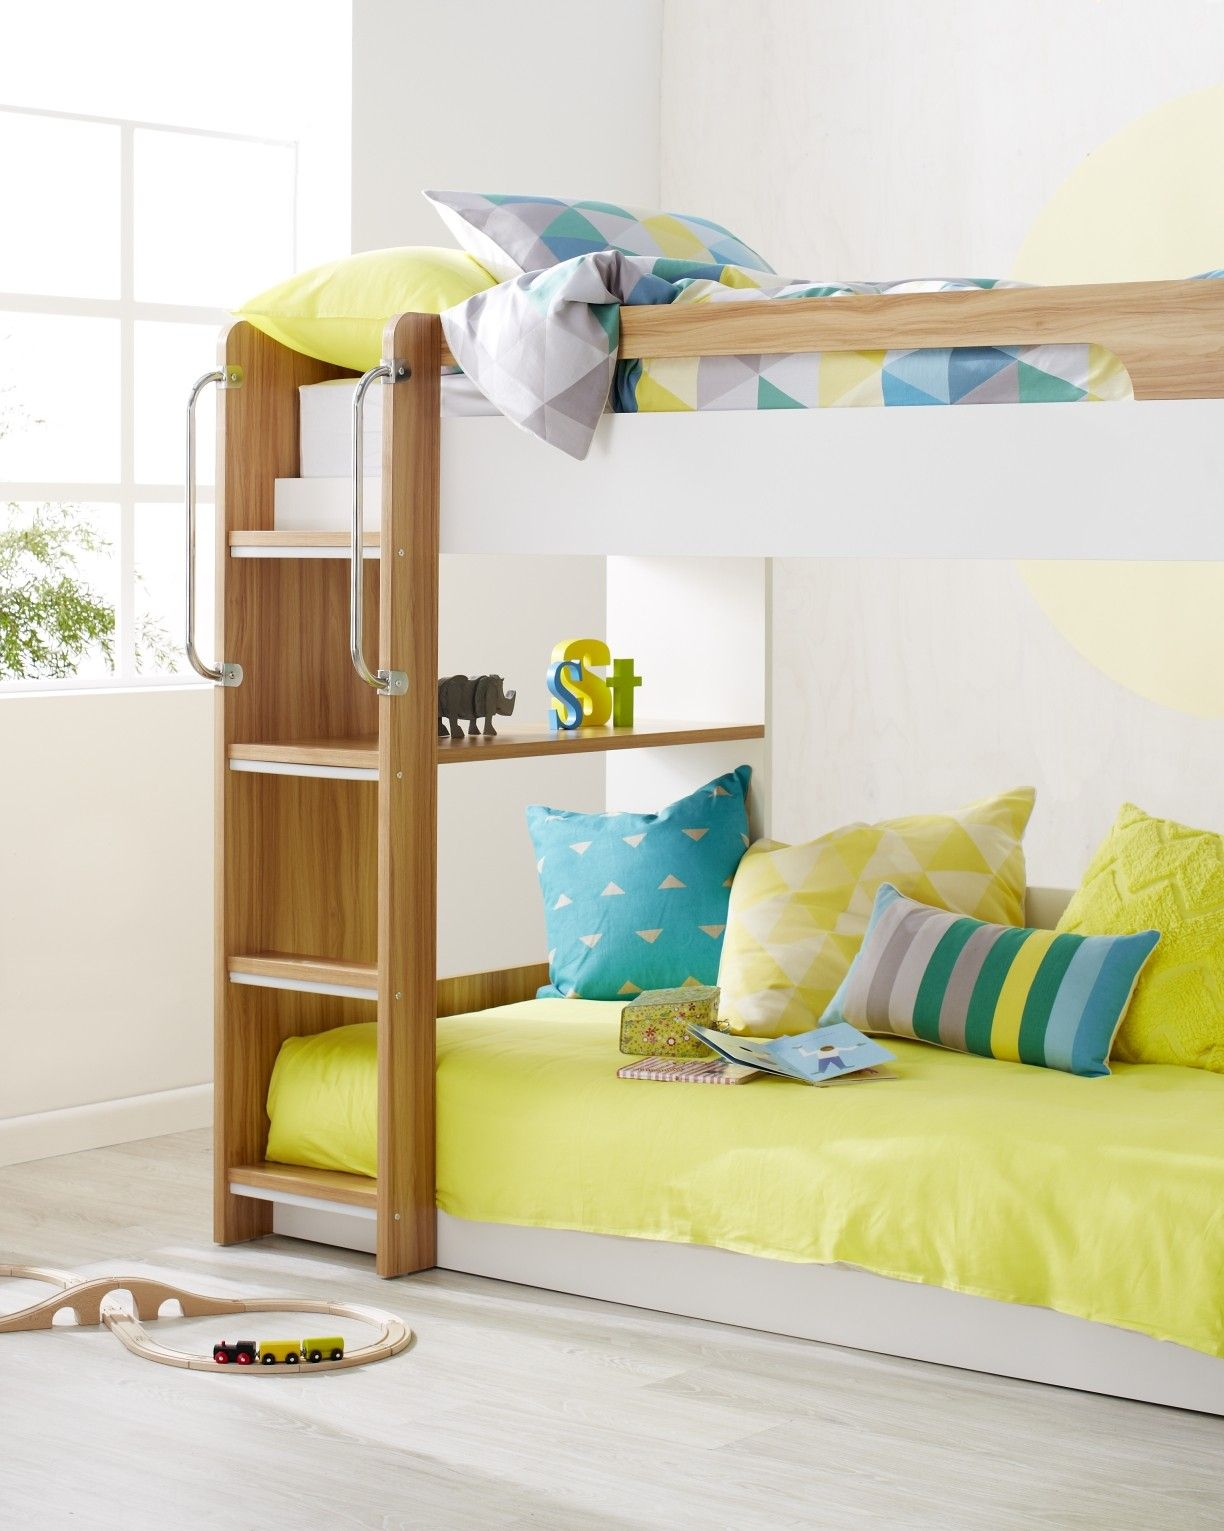 Mercury Bunk - $999 from forty winks. I like the sense of openness with this bunk. It is higher but would allow more room for bottom sleeper. Also love the built in shelves.